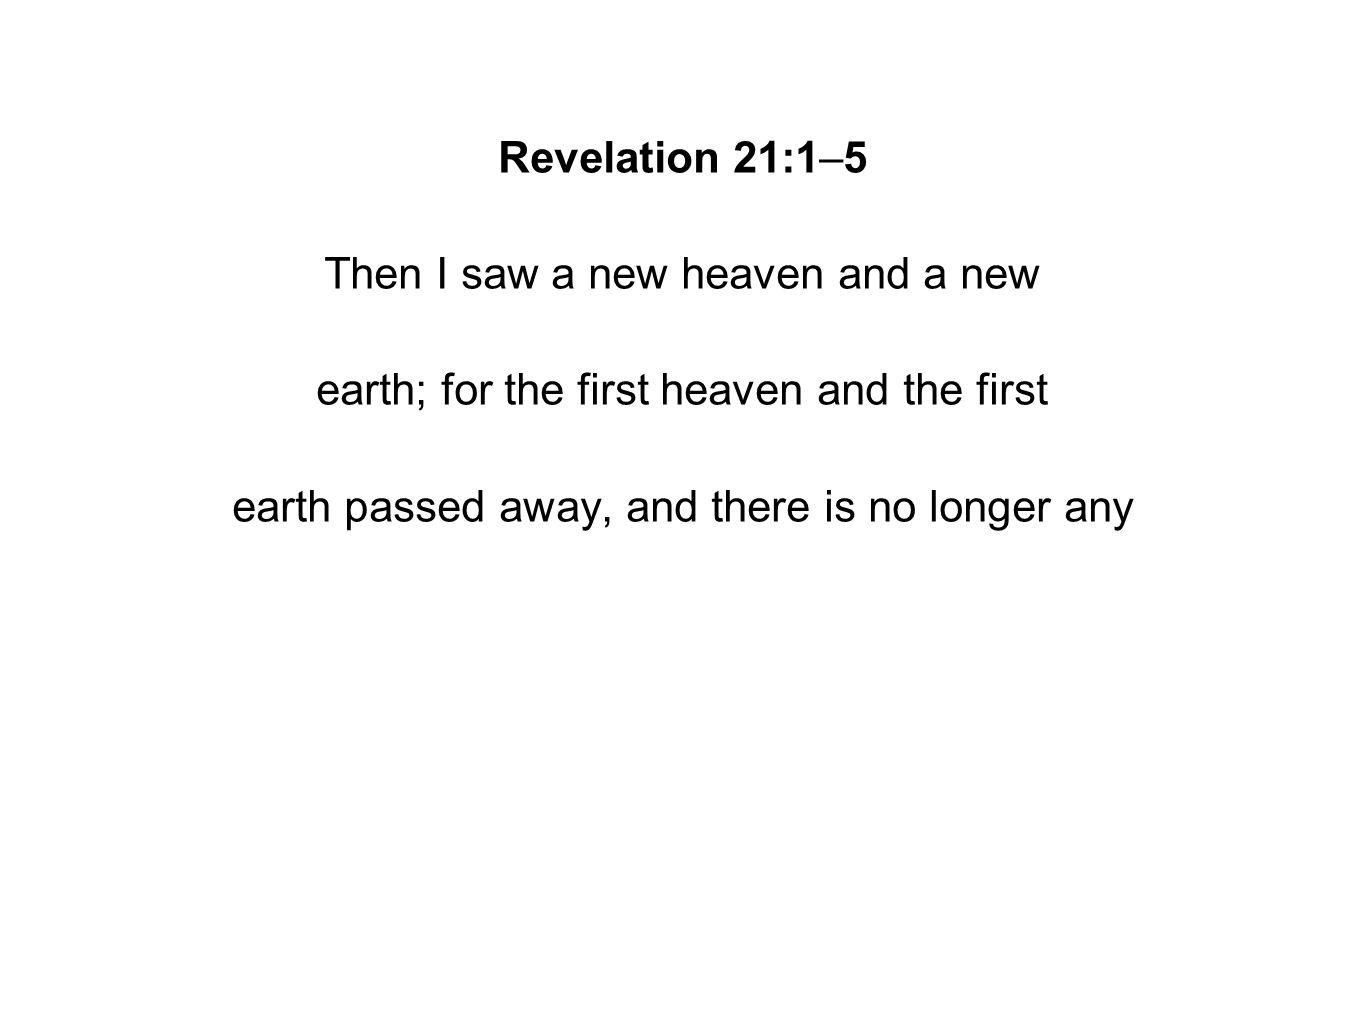 Revelation 21:1–5 Then I saw a new heaven and a new earth; for the first heaven and the first earth passed away, and there is no longer any